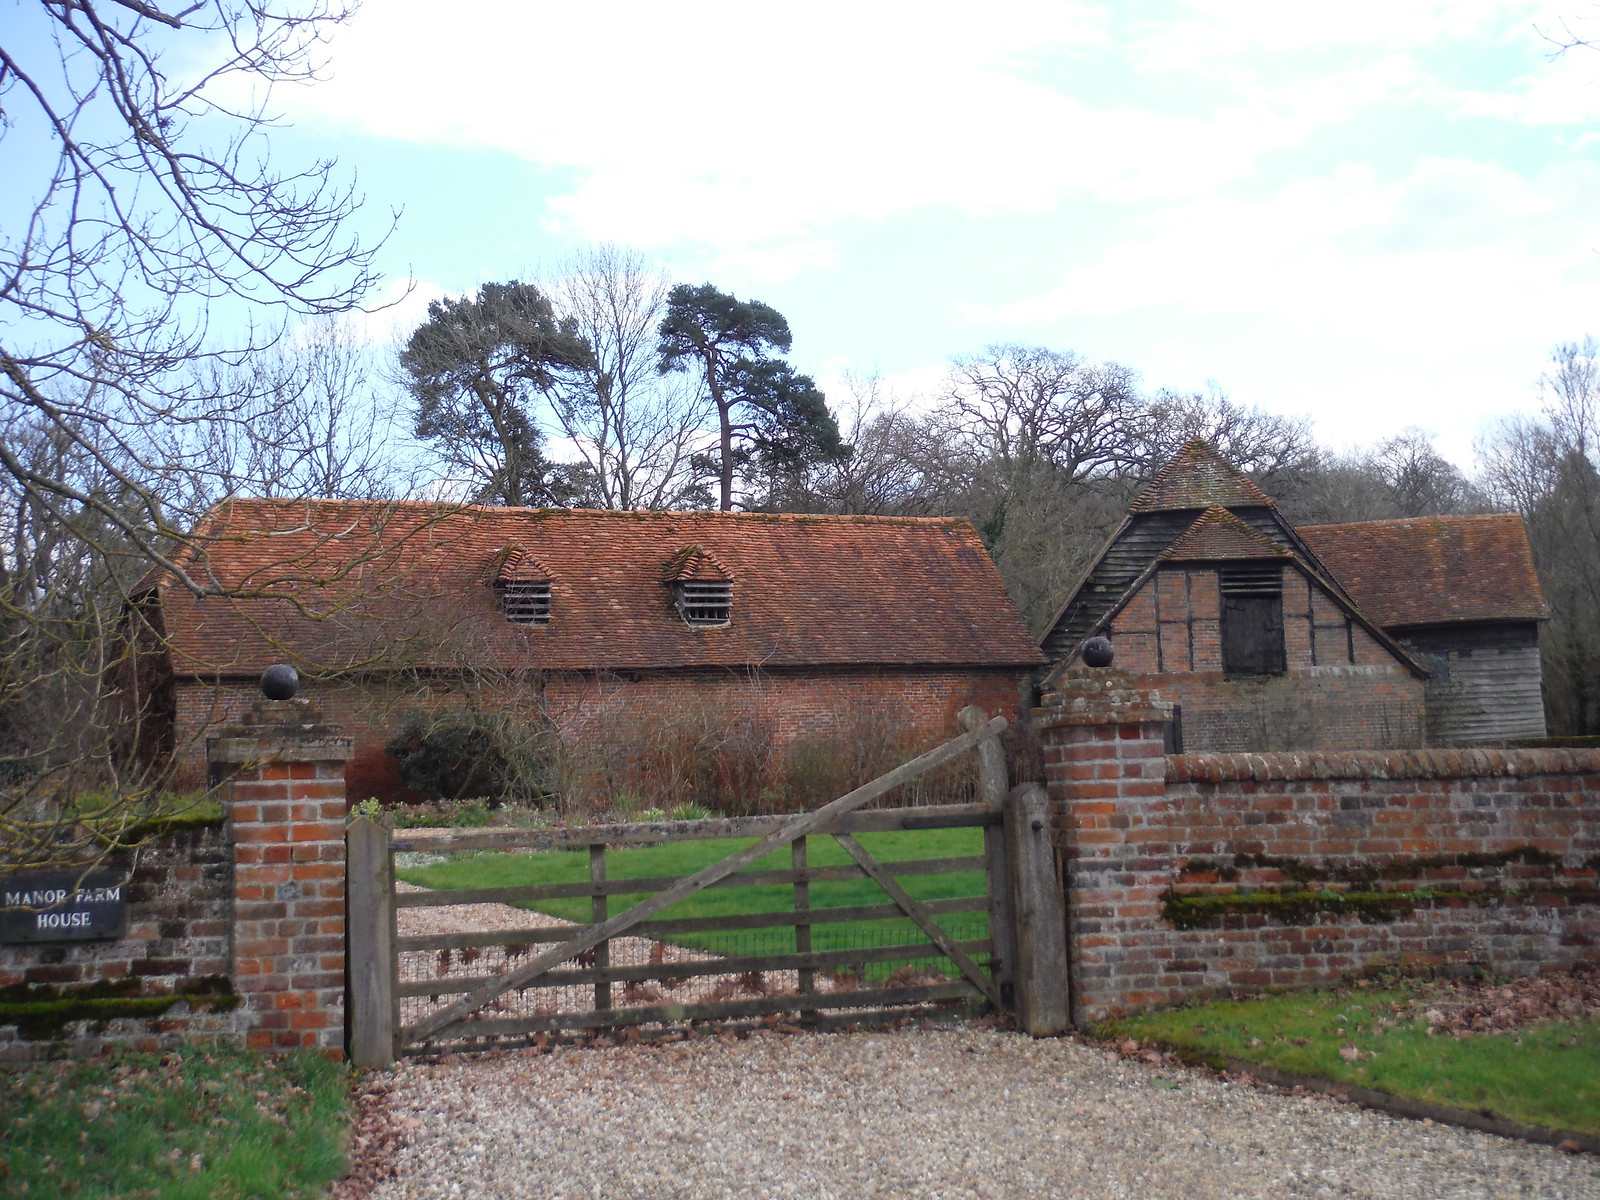 Manor Farm House, Bucklebury SWC Walk 117 Aldermaston to Woolhampton (via Stanford Dingley)